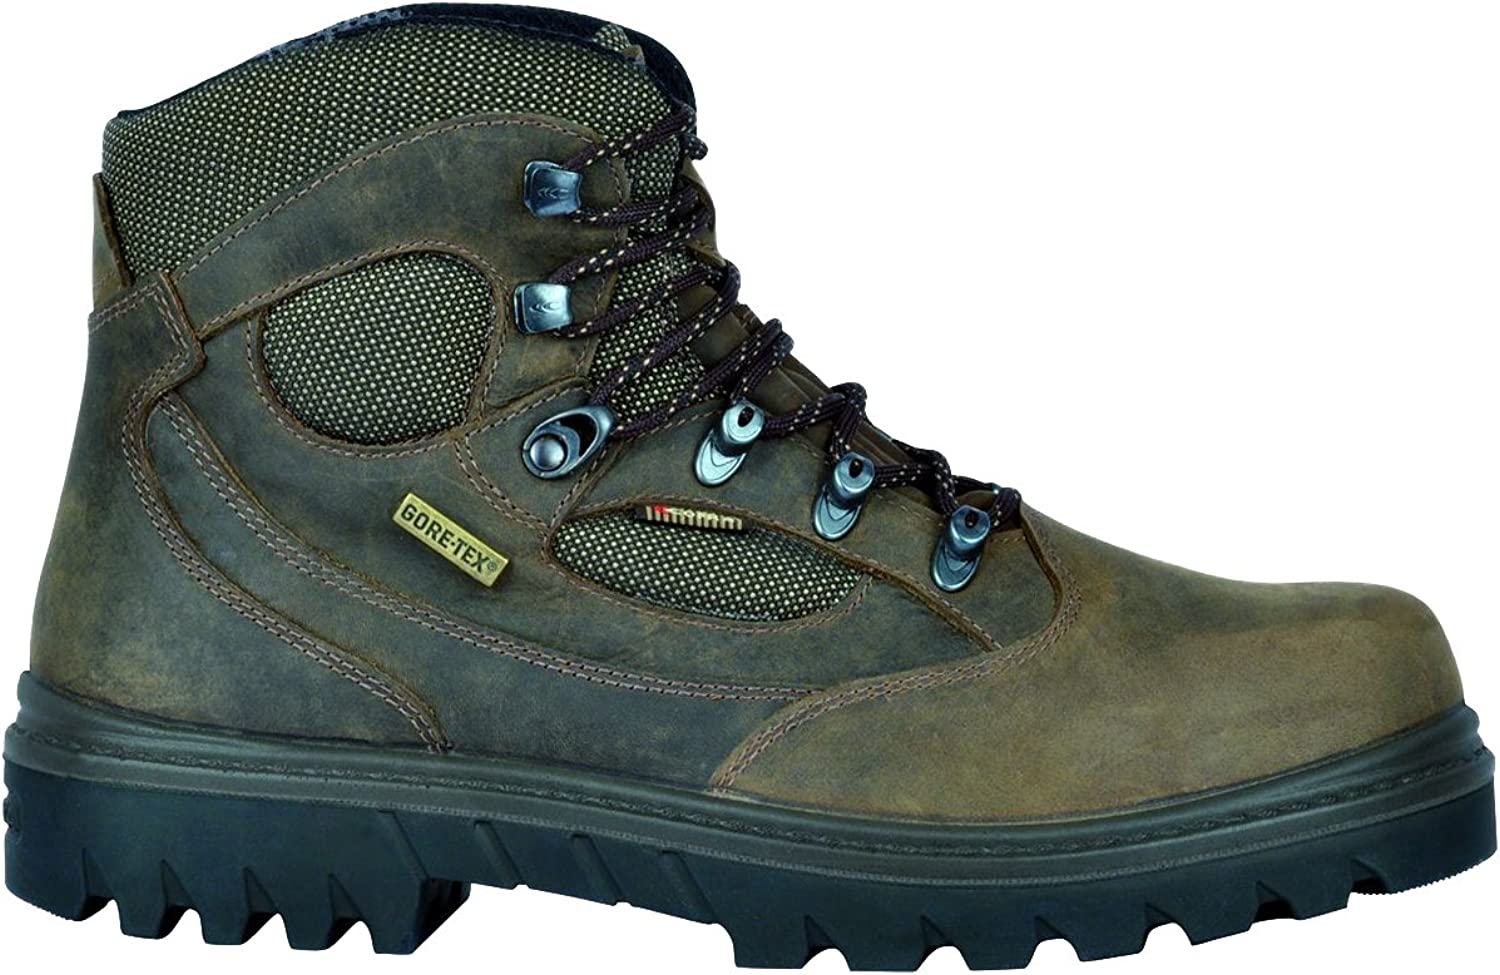 Cofra San Cristobal Brown Grain Leather Gore-Tex S3 Safety Steel Toe Boots WR HRO SRC